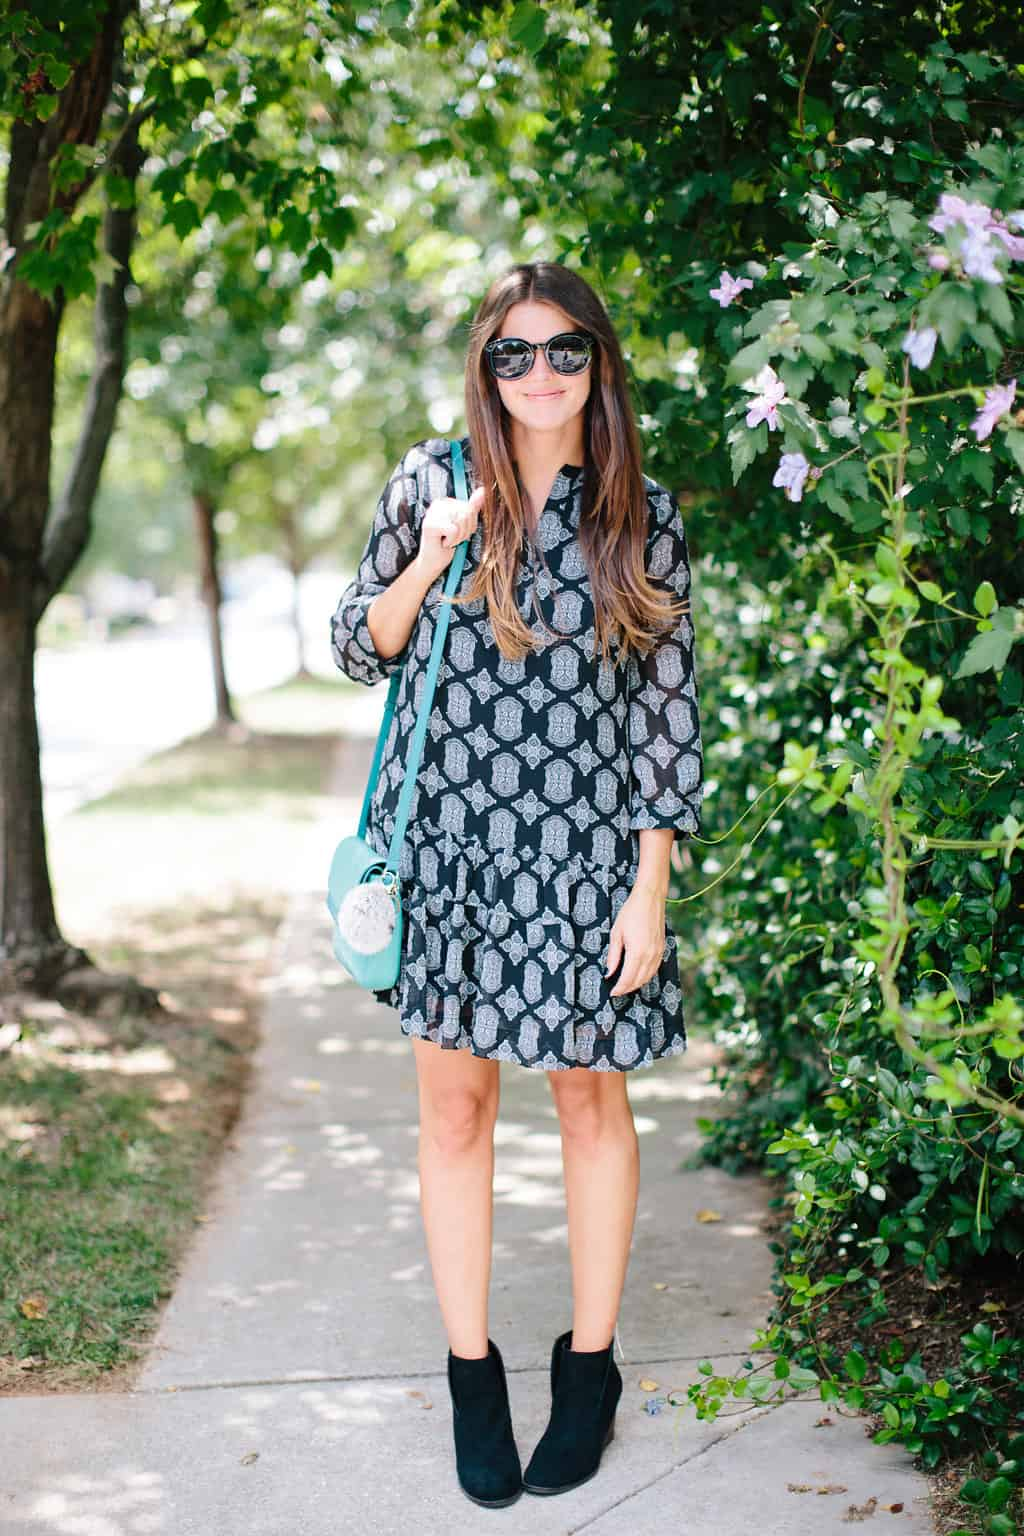 Fall-Transition-Outfit-Drop-Waist-Dress-Ankle-Booties-sunnies